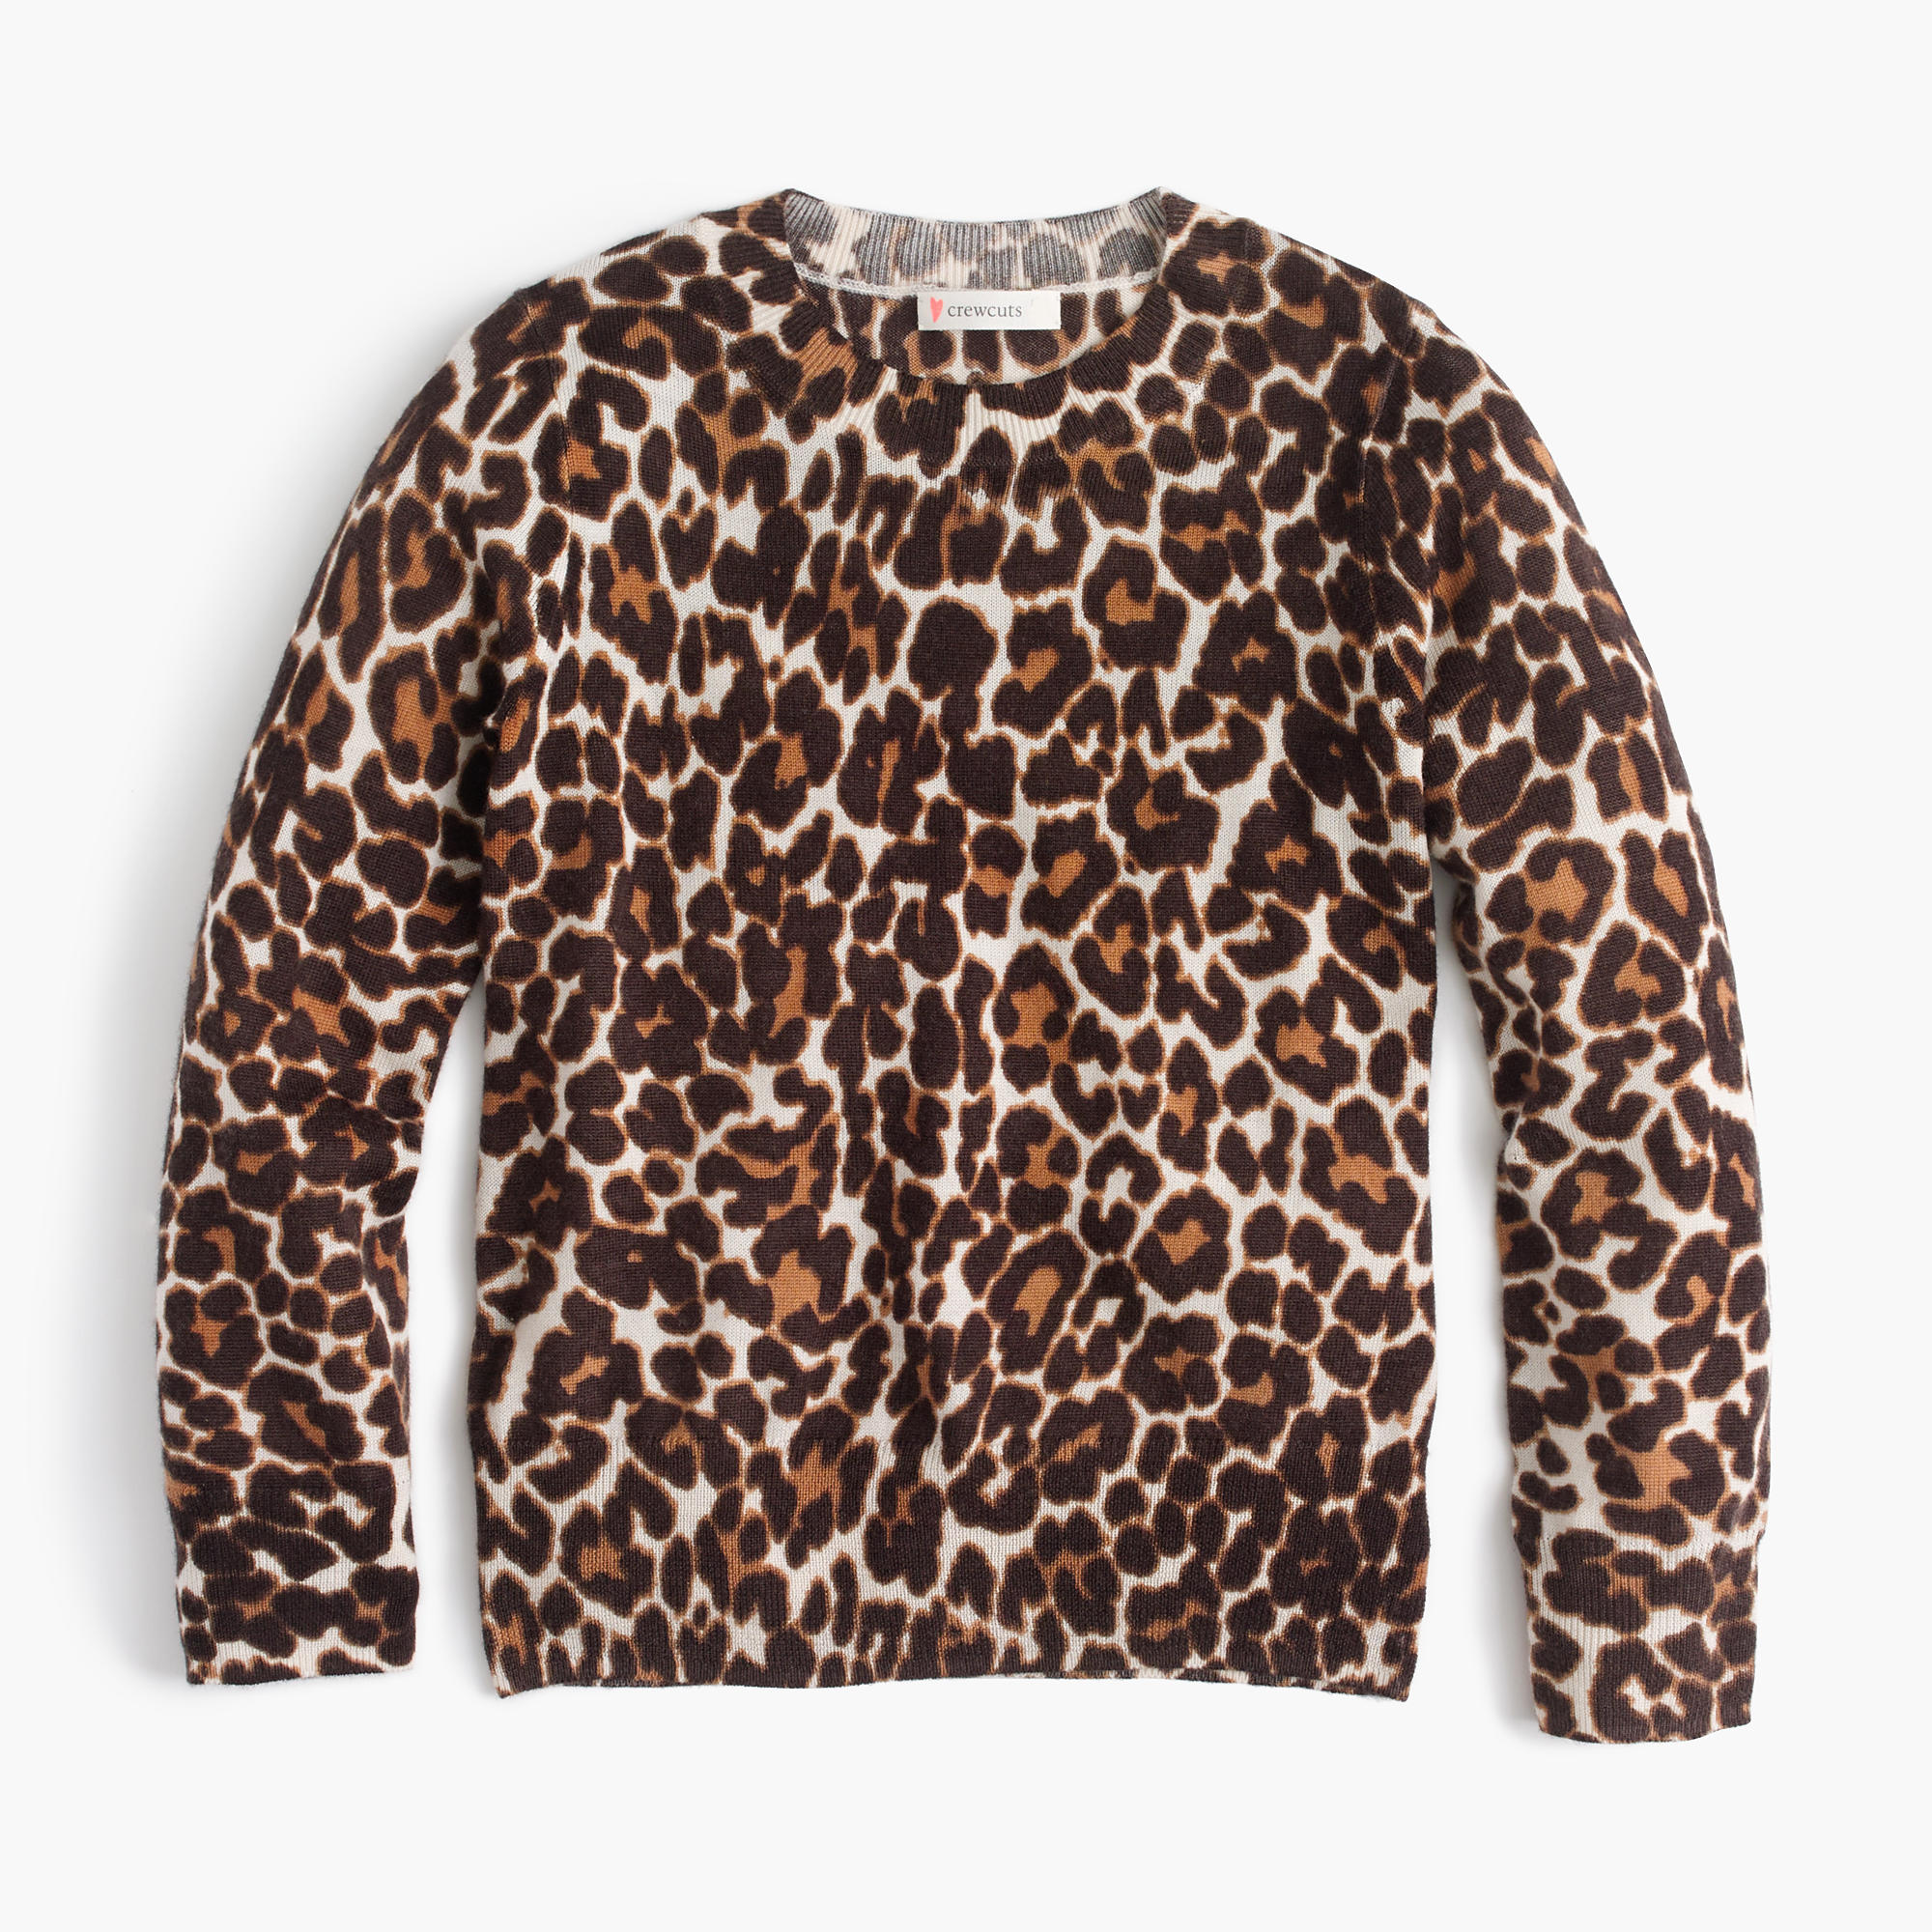 Girls' Leopard-Print Popover Sweater : Girls' Sweaters | J.Crew